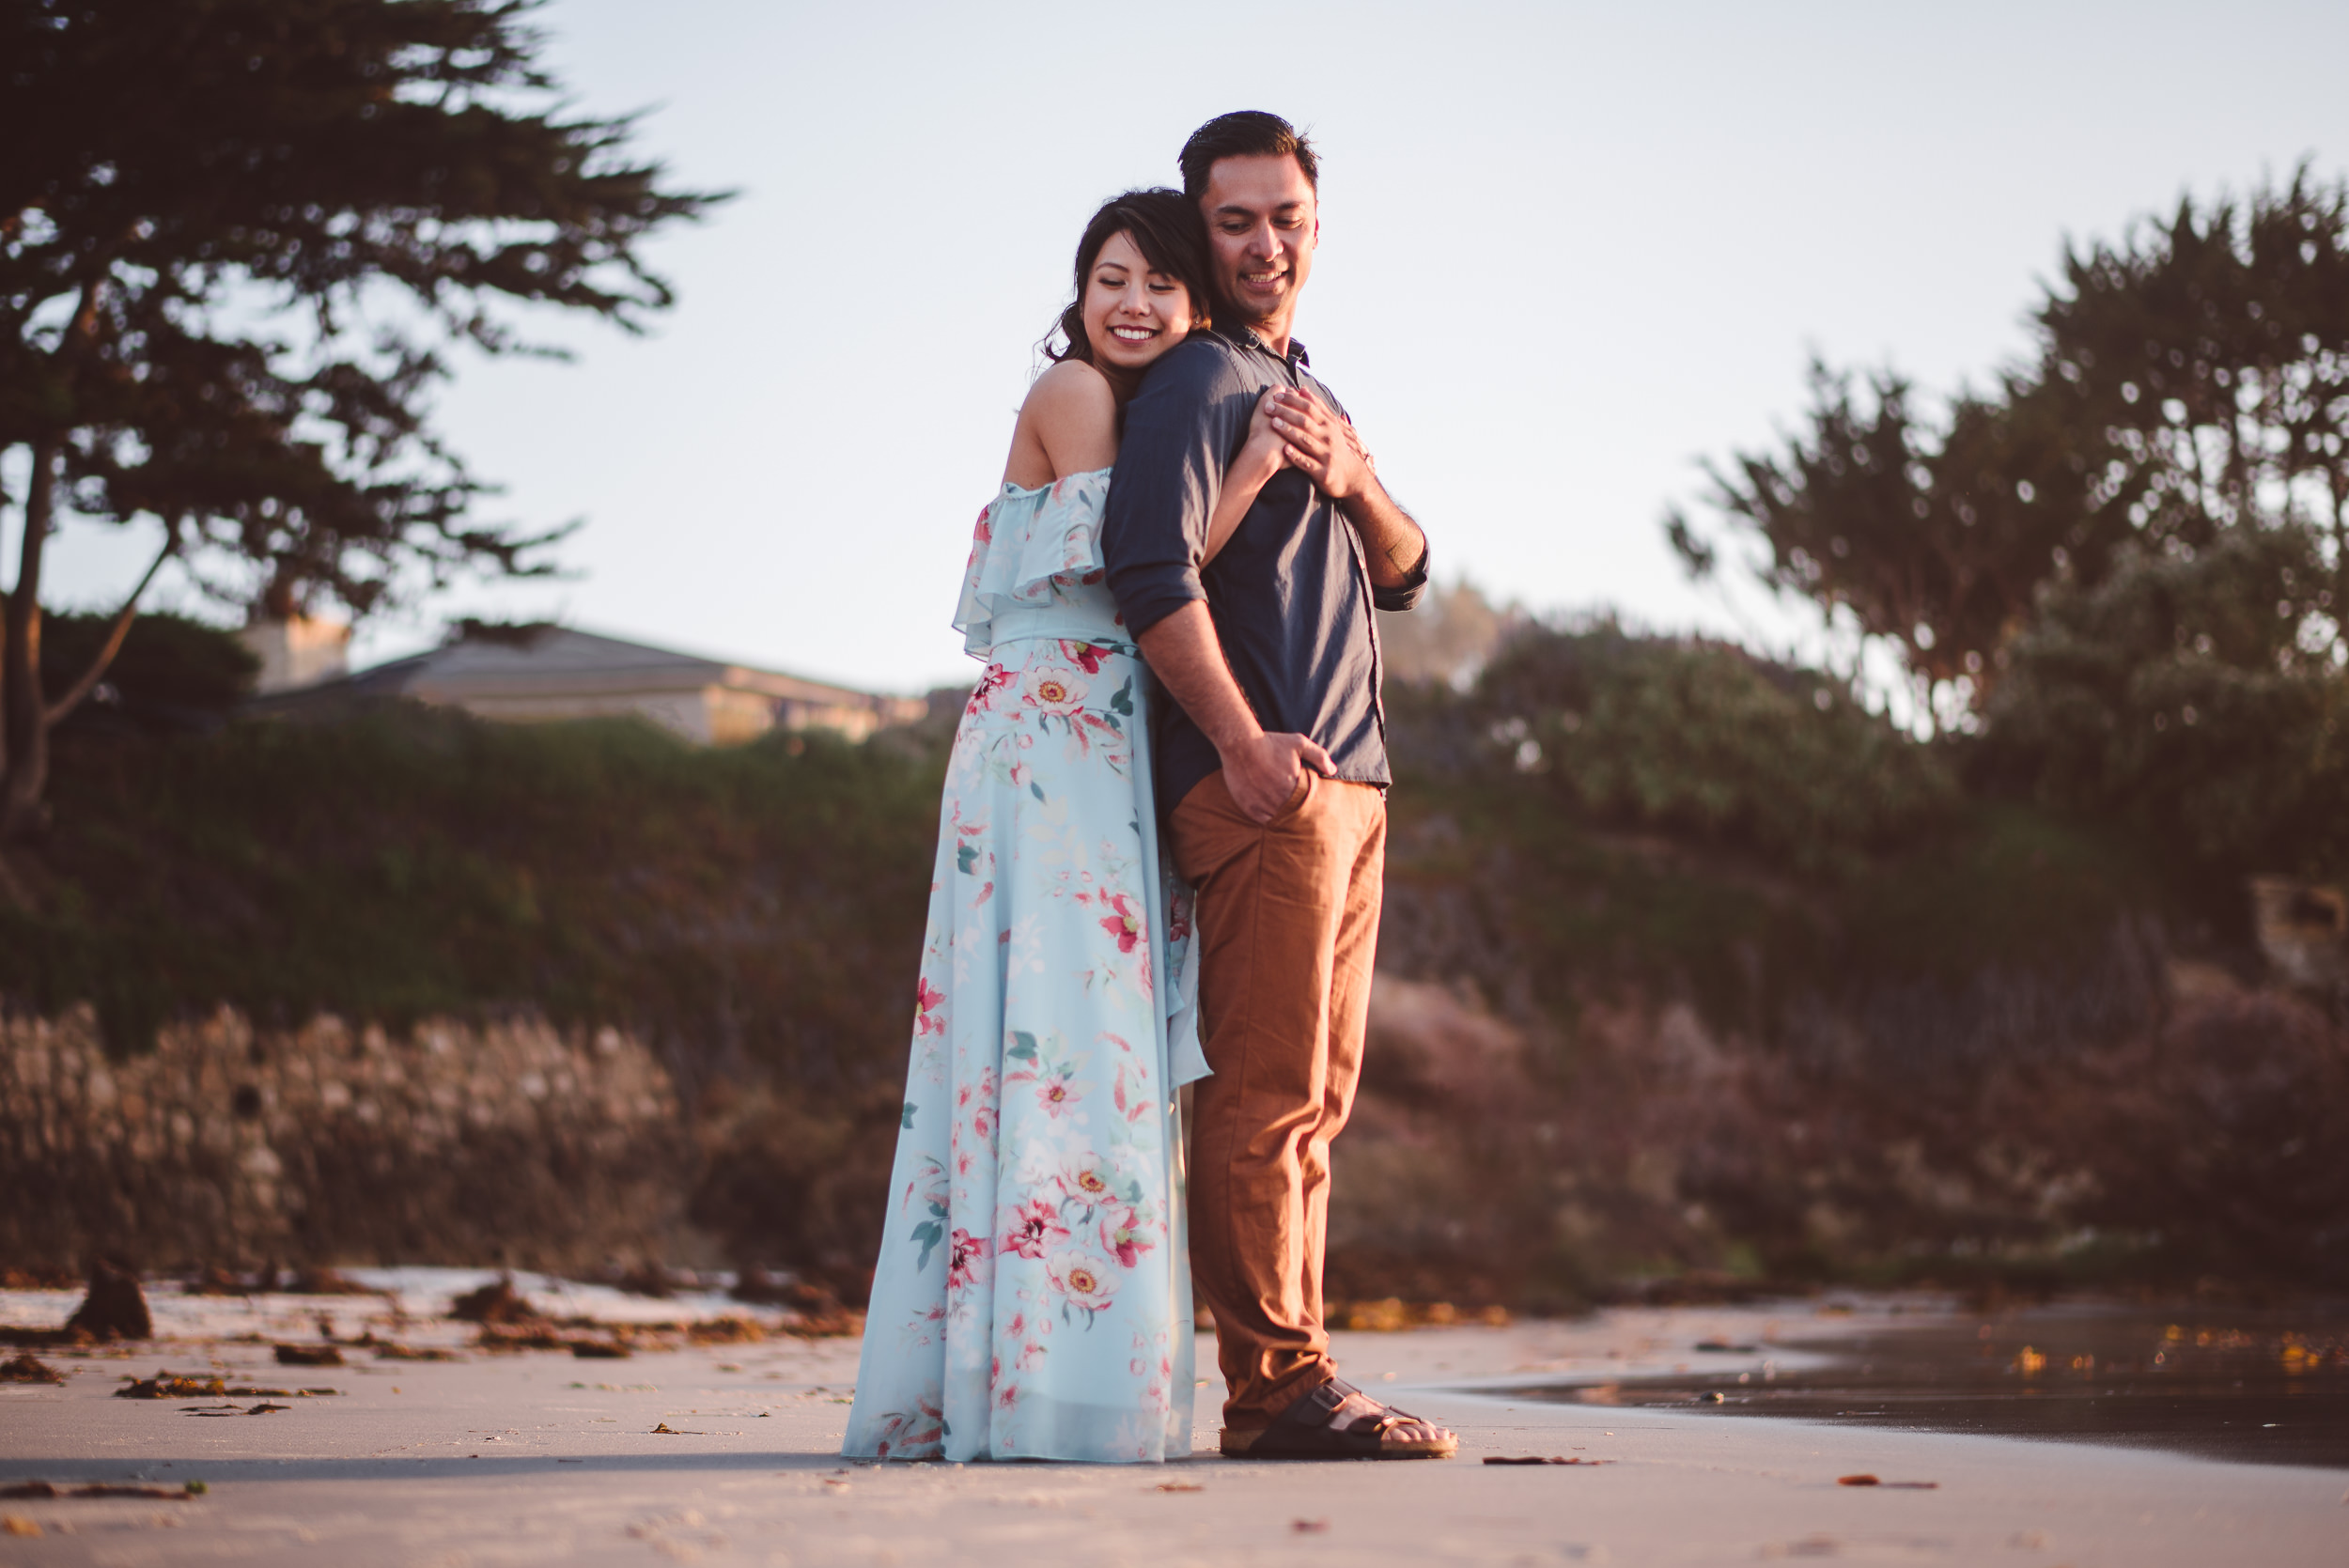 Carmel-by-the-Sea-Engagement-Photography-014.jpg